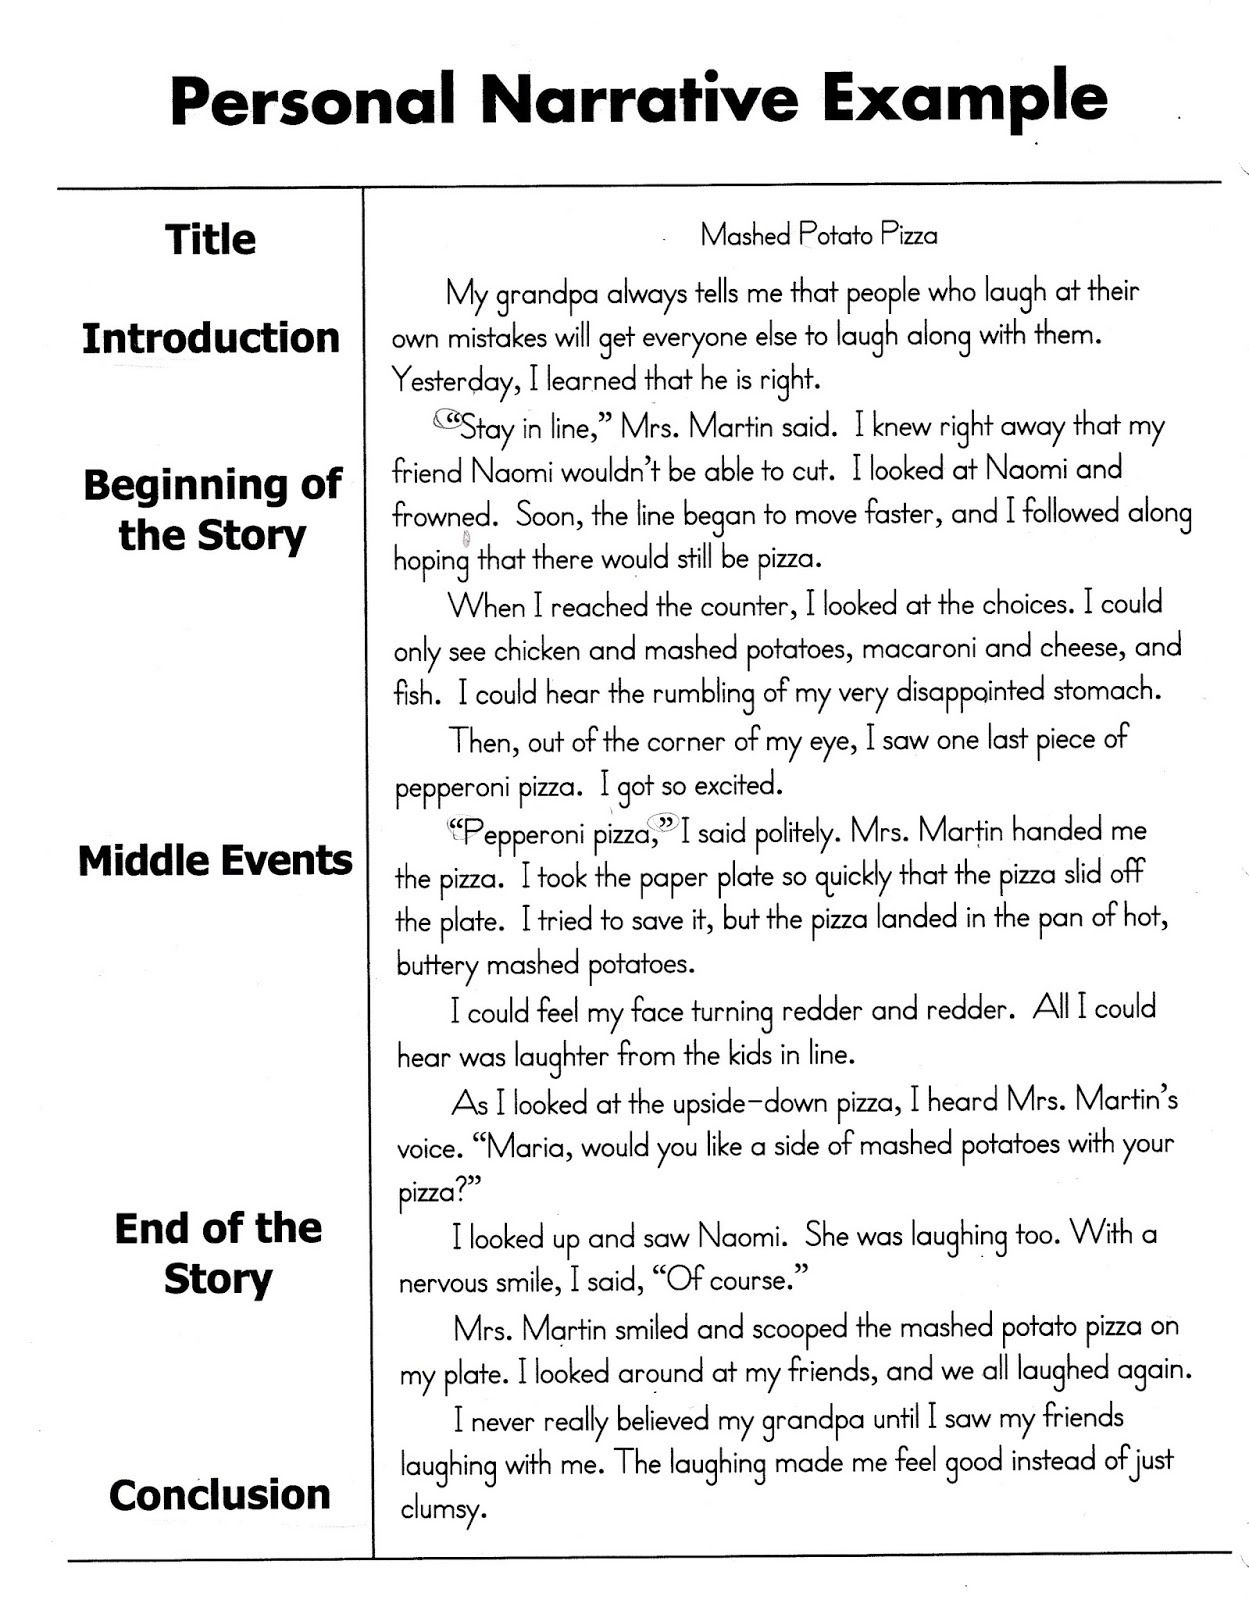 Third person narrative essay